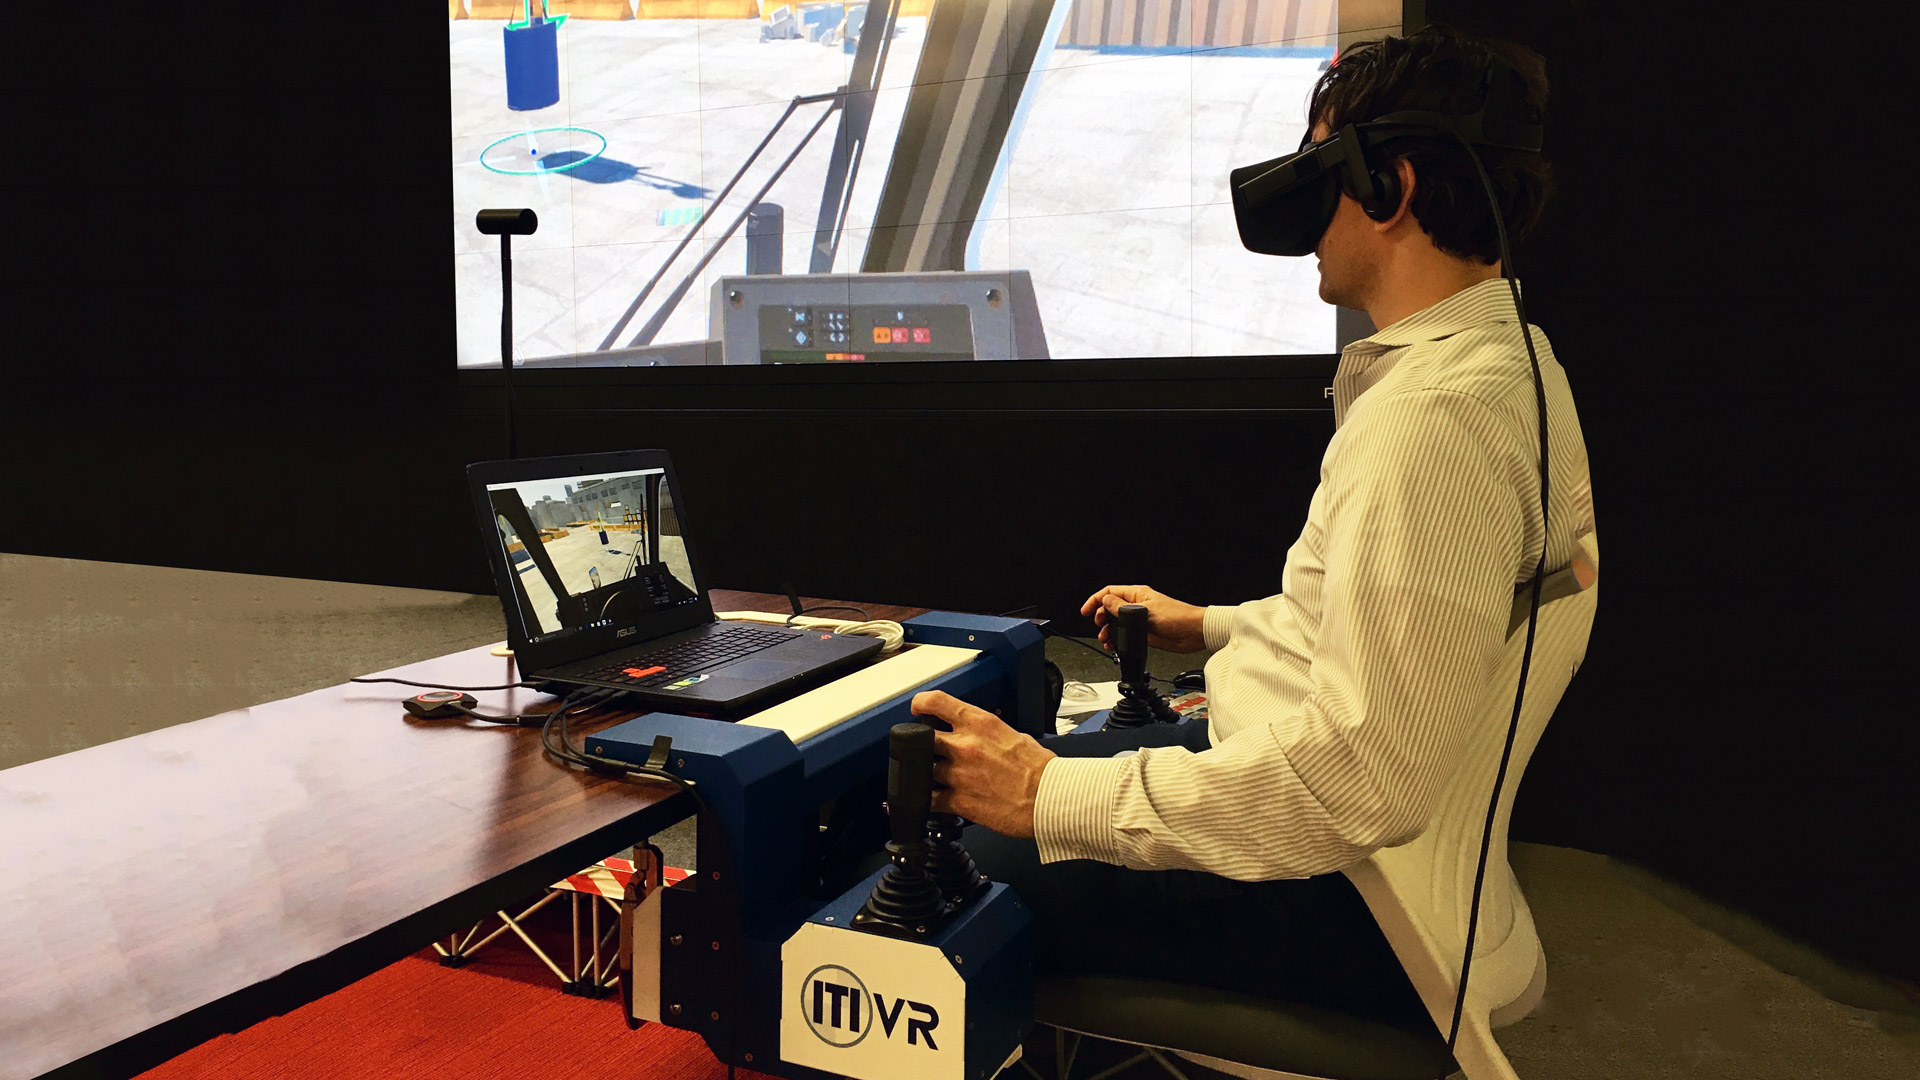 Bechtel's VR Crane Simulator trains employees in a safe & controlled environment